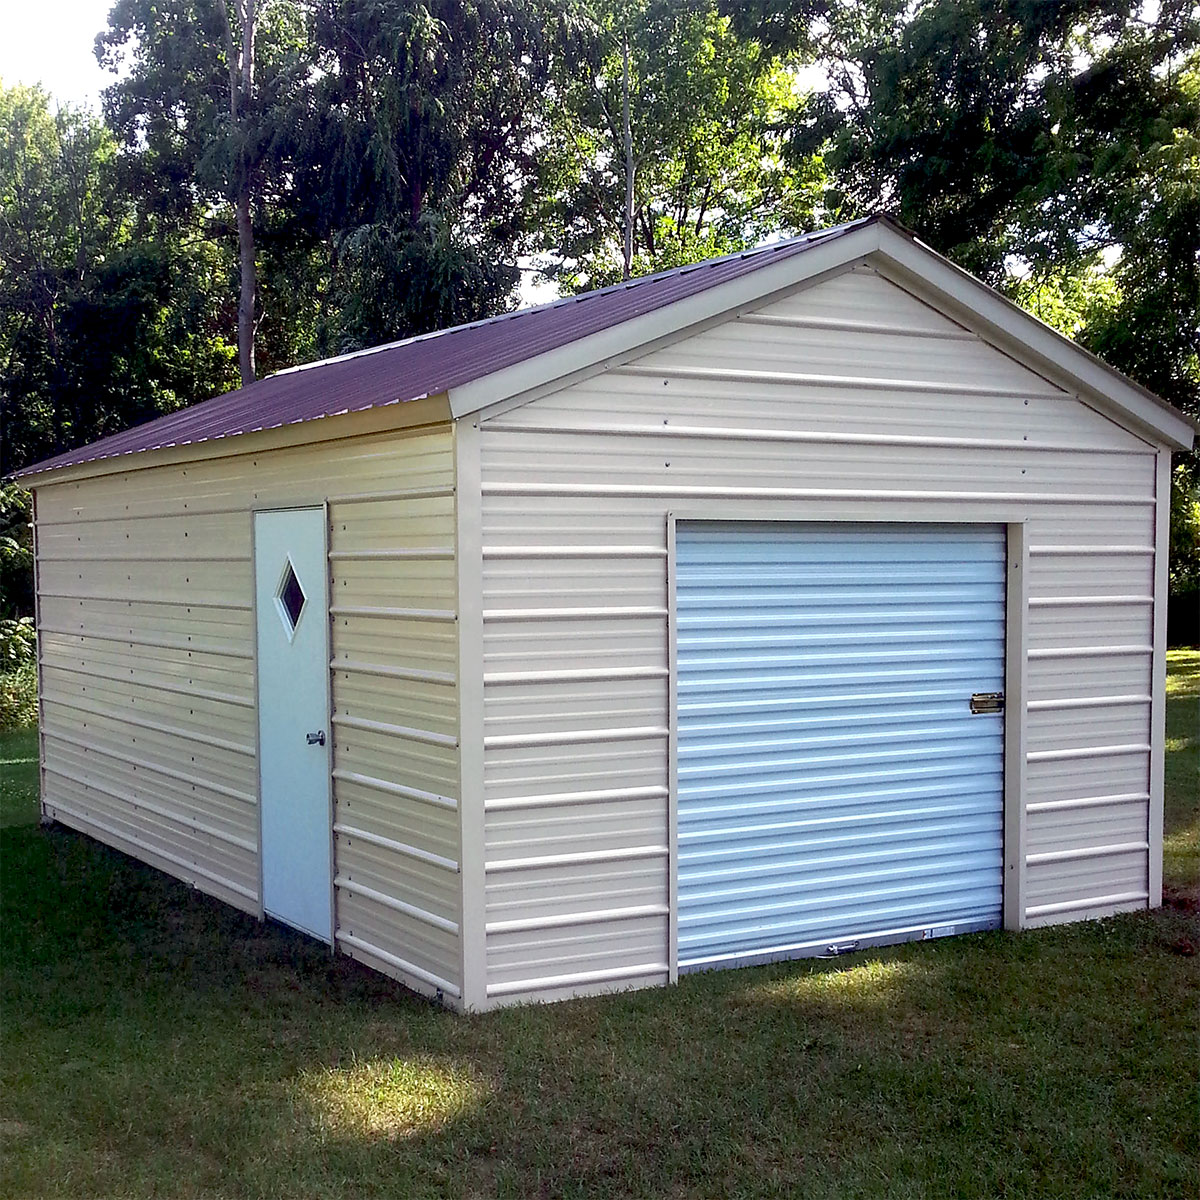 Enclosed garage customization options wholesale direct for Cost to build a single car garage